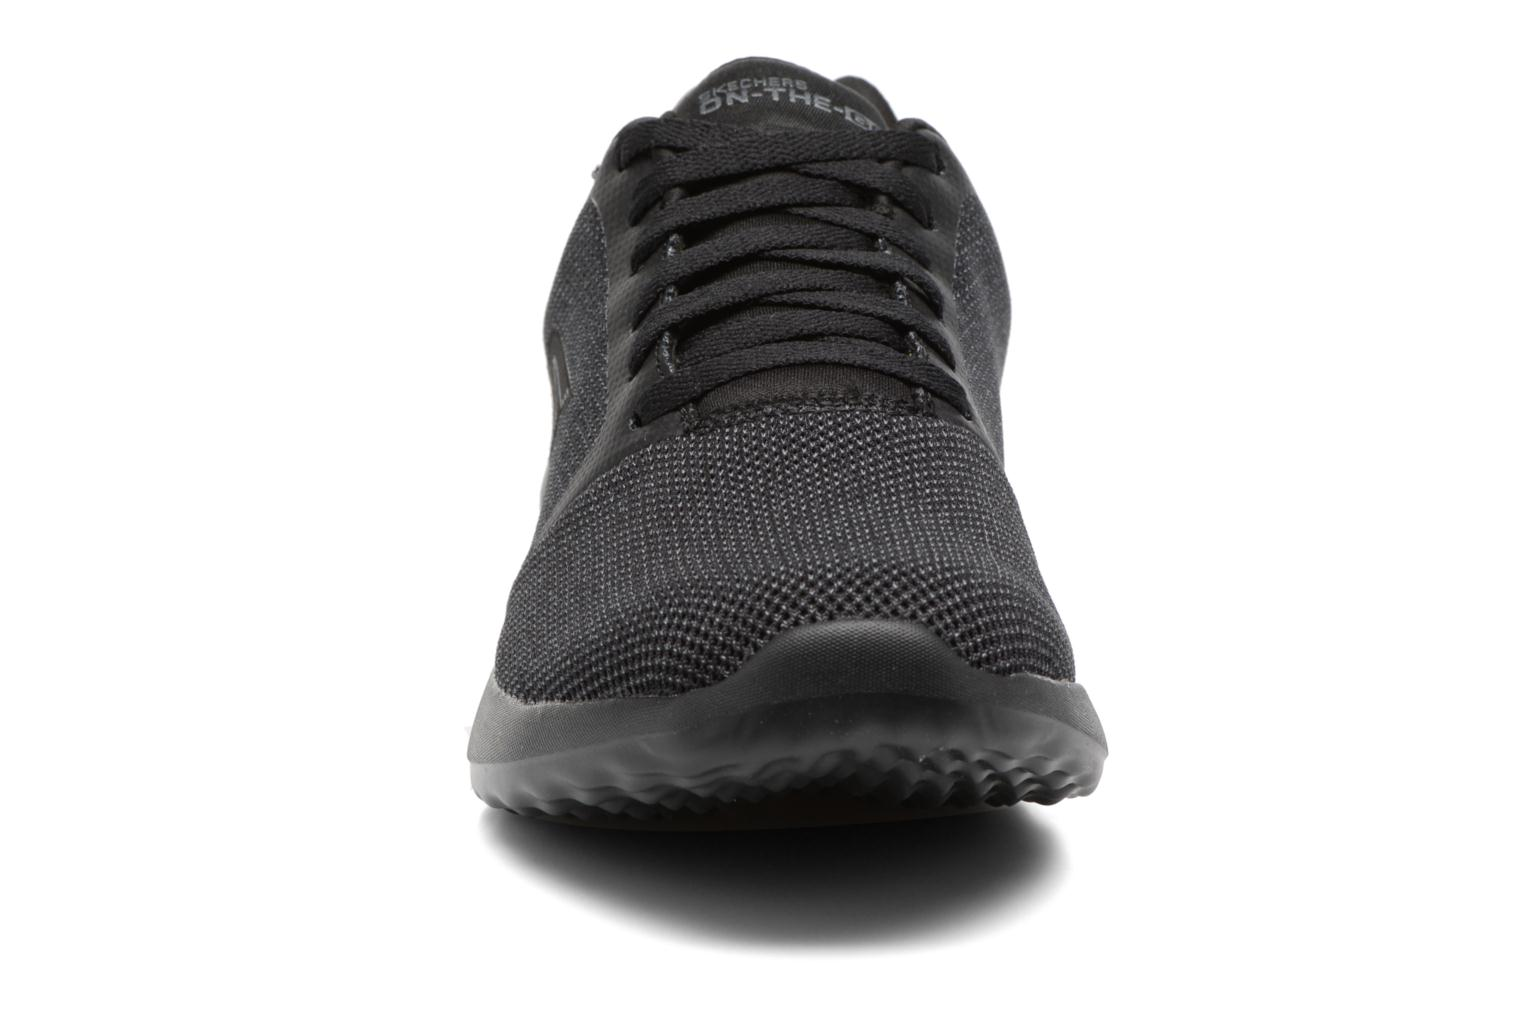 Zapatillas de deporte Skechers On-the-go City 3.0 Negro vista del modelo